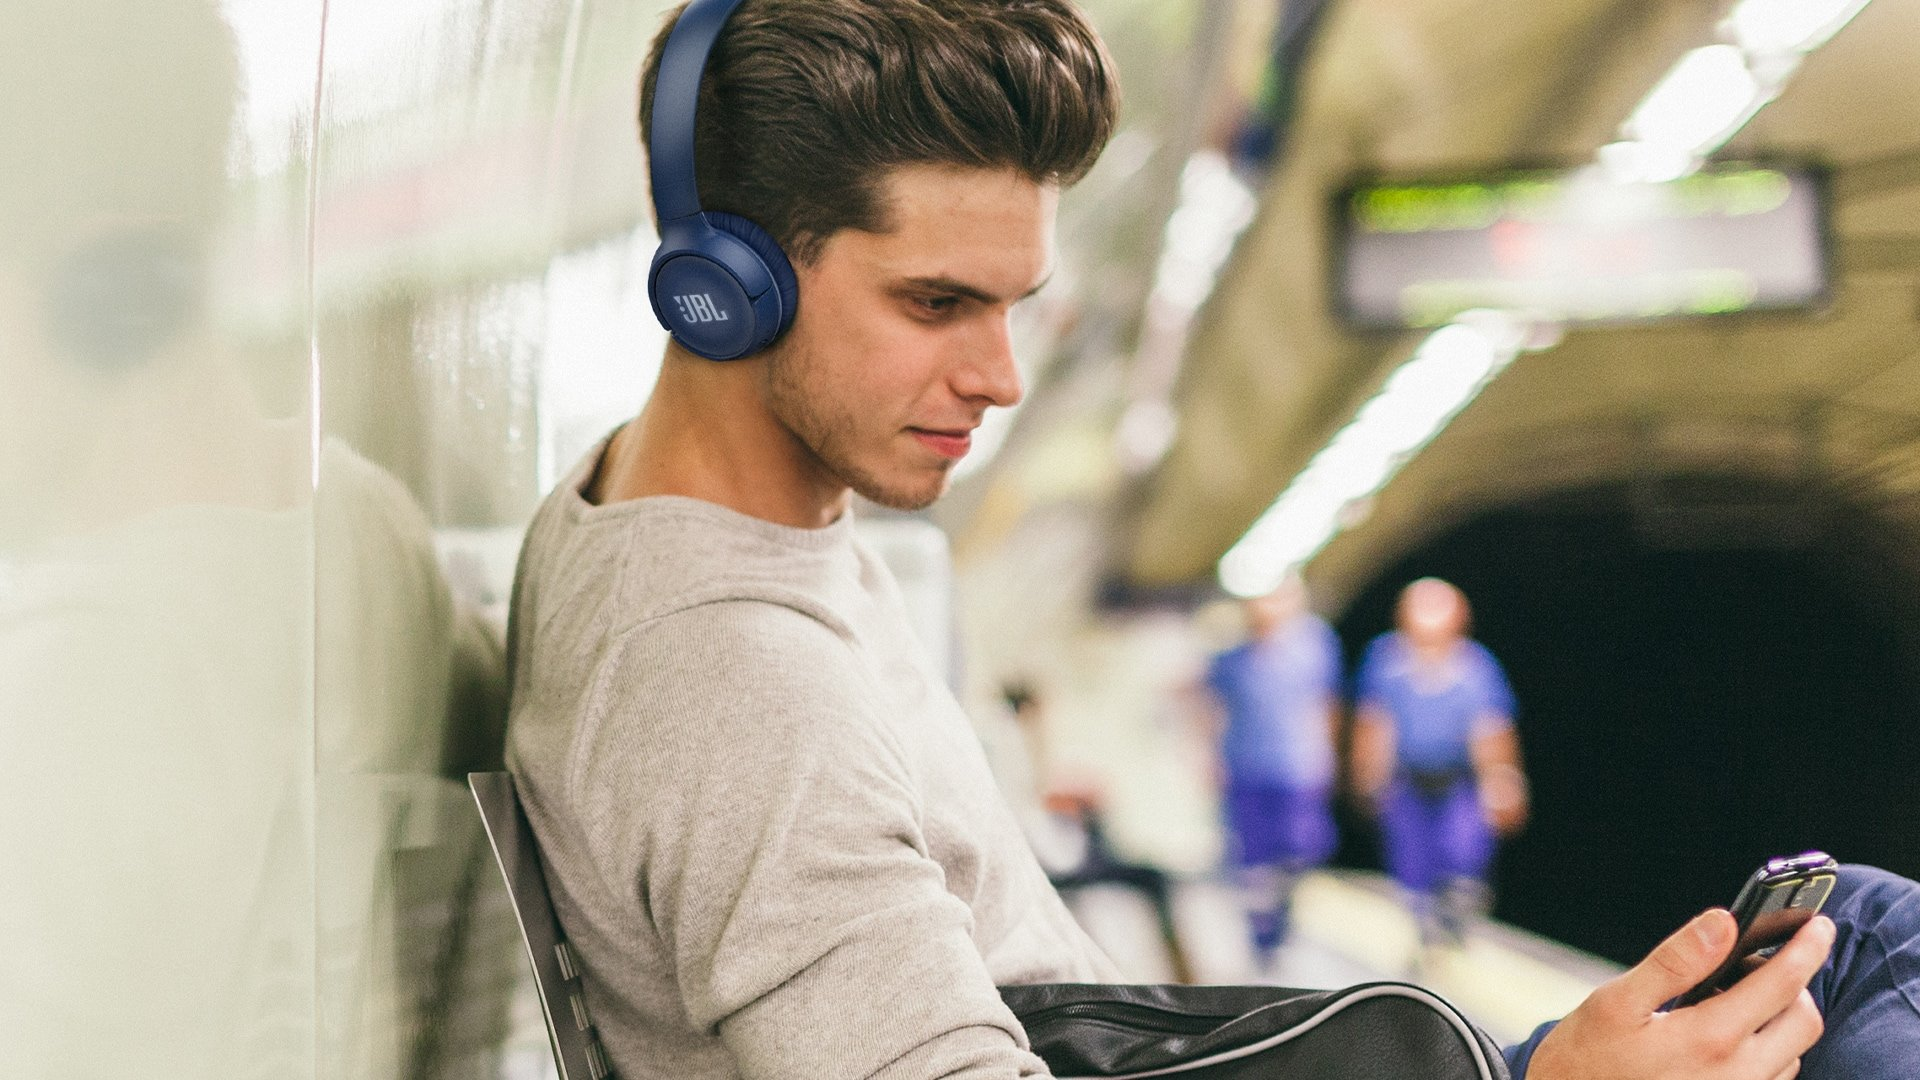 Shop On-Ear Headphones